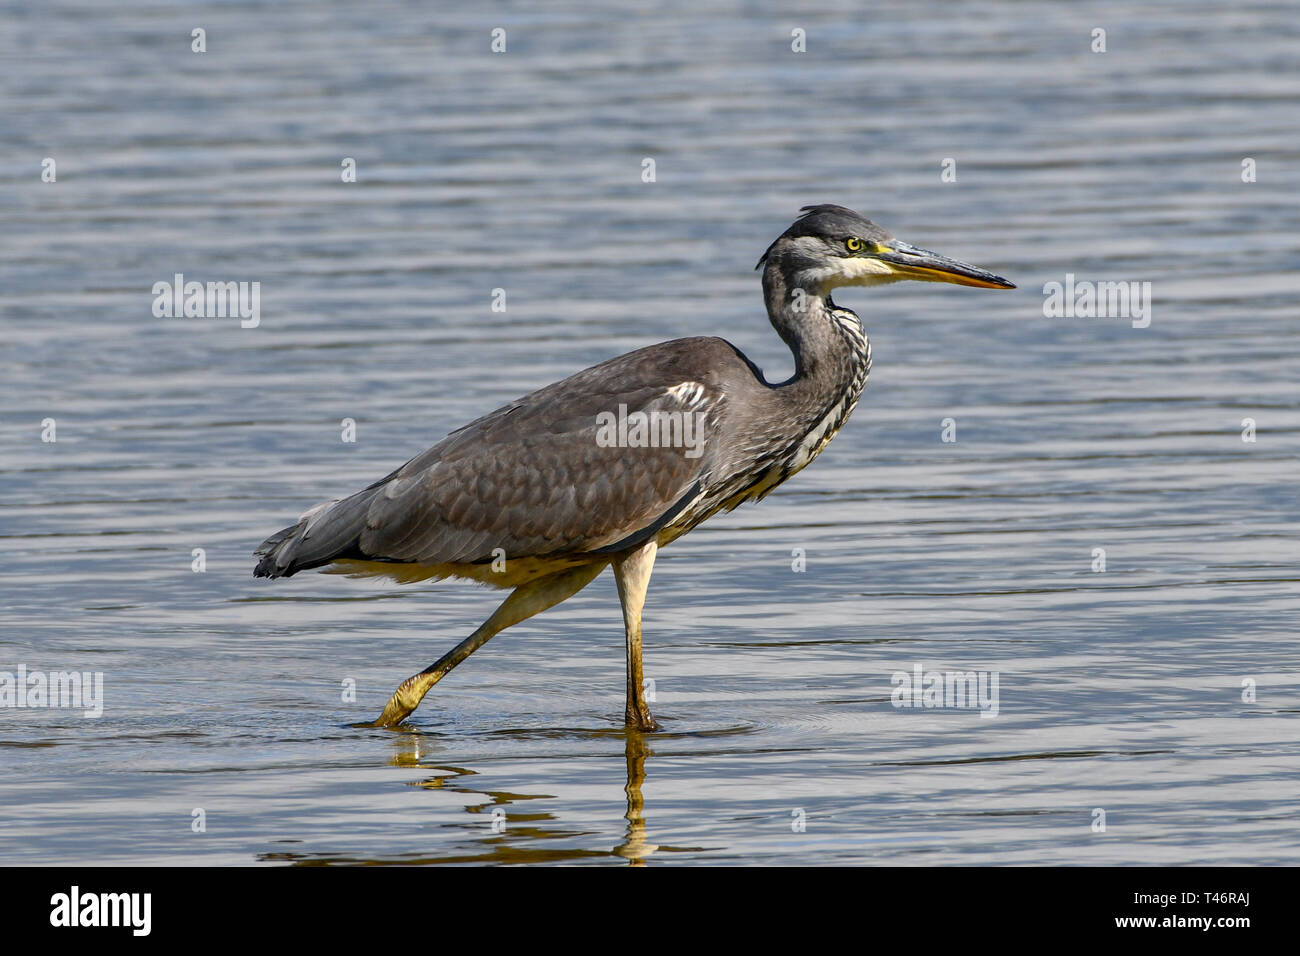 A grey heron wades the shores of Kenfig Pool in search of fish. Kenfig Nature Reserve, Mid-Glamorgan, UK - Stock Image